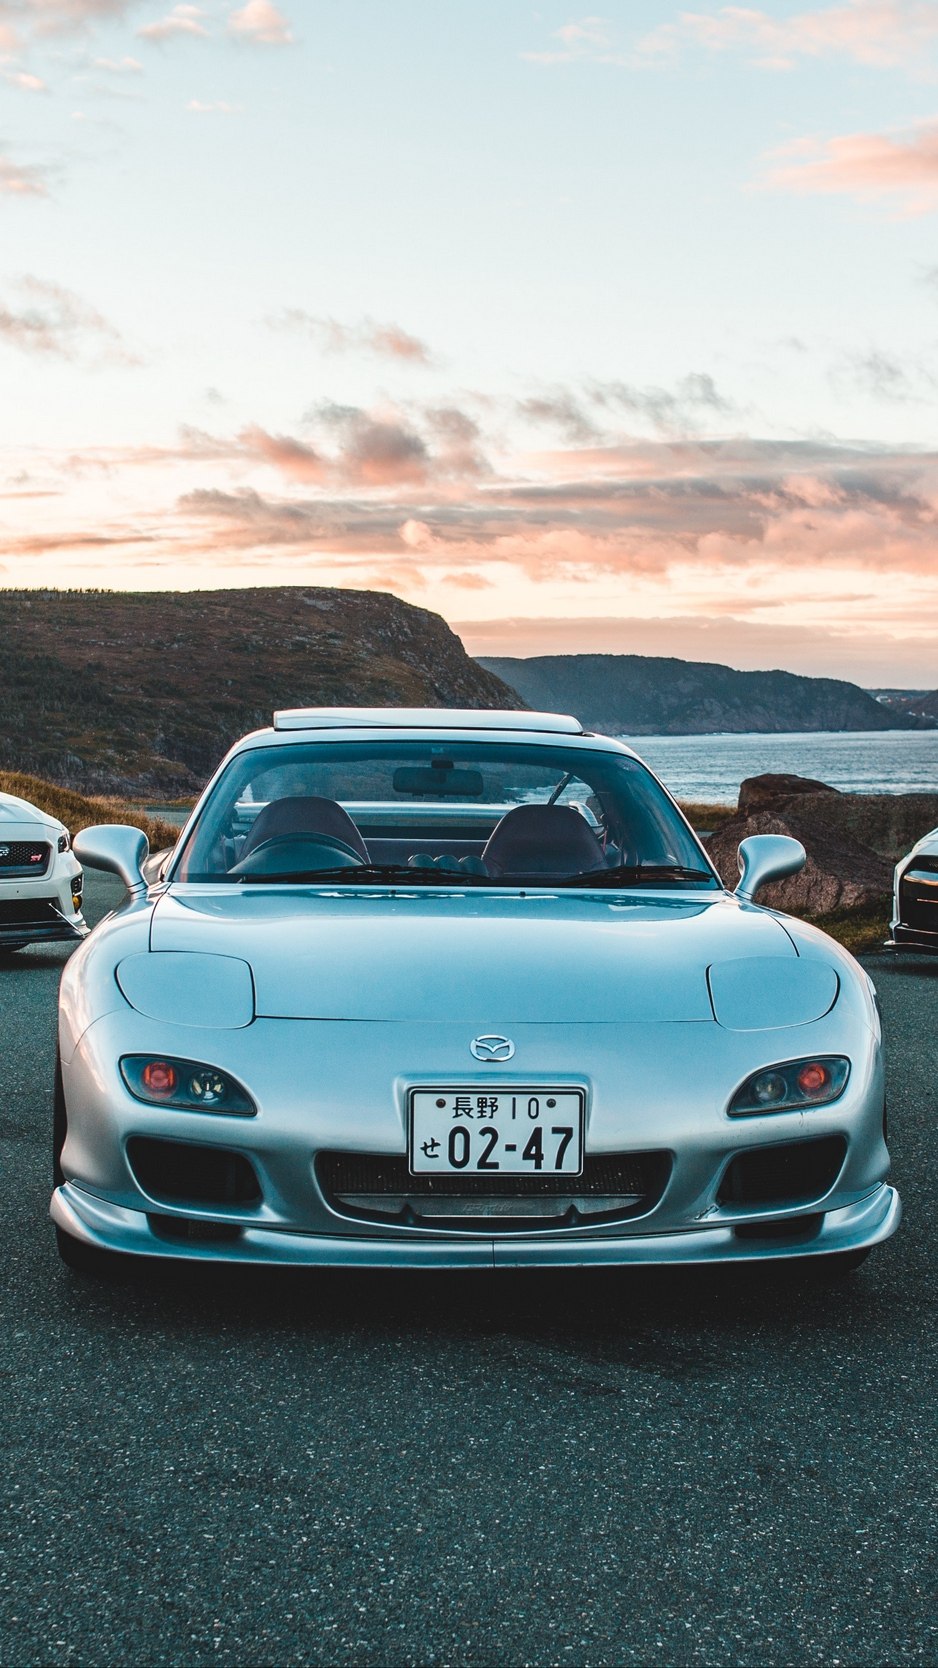 Wallpaper Mazda Rx 7 Mazda Cars Front View Mazda Rx 7 Wallpapers For Phone 1694080 Hd Wallpaper Backgrounds Download